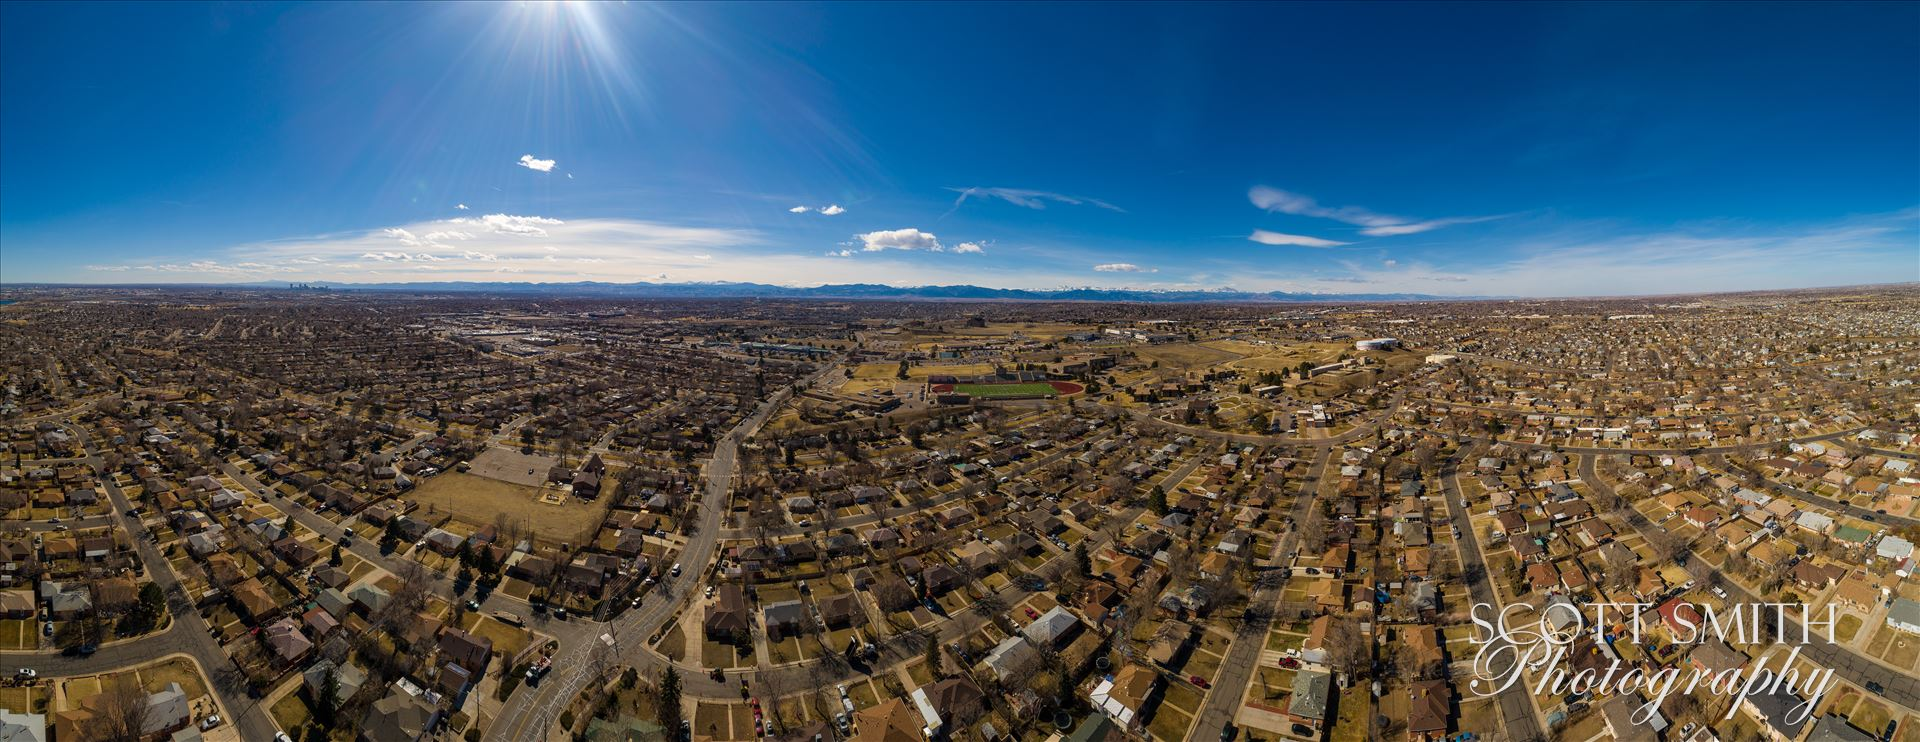 Panoramic aerial shot of Thornton, Colorado - A panoramic aerial photo of Thornton, Colorado, made up of 21 separate photos. by Scott Smith Photos